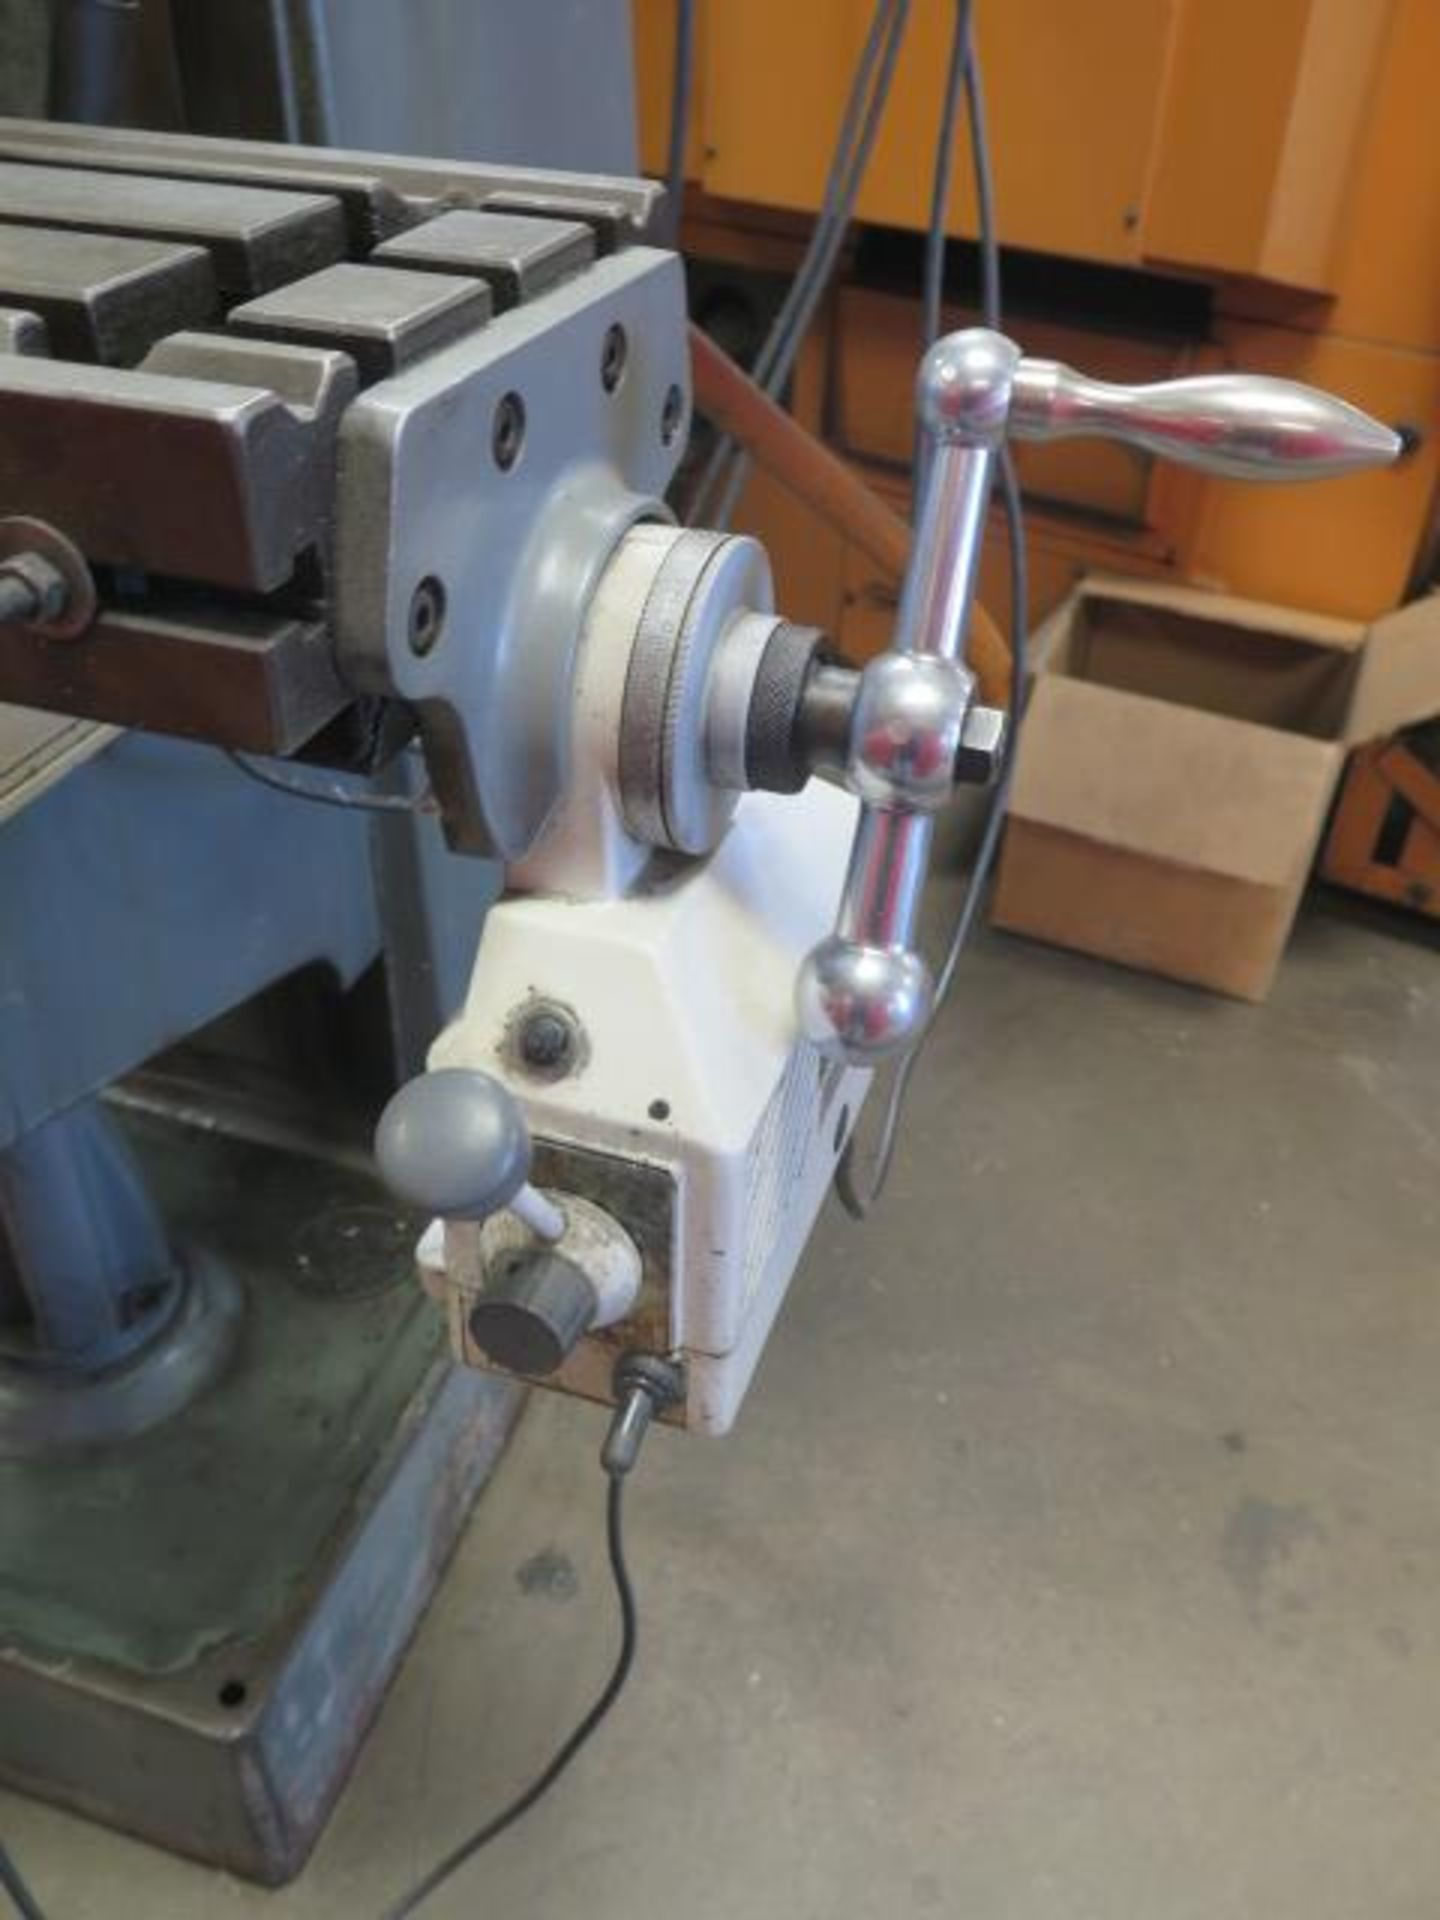 """Lagun FT-1 Vertical Mill w/ Mitutoyo DRO, 55-2940 RPM, 8-Speeds, Power Feed, 9"""" x 42"""" Table (SOLD - Image 11 of 14"""